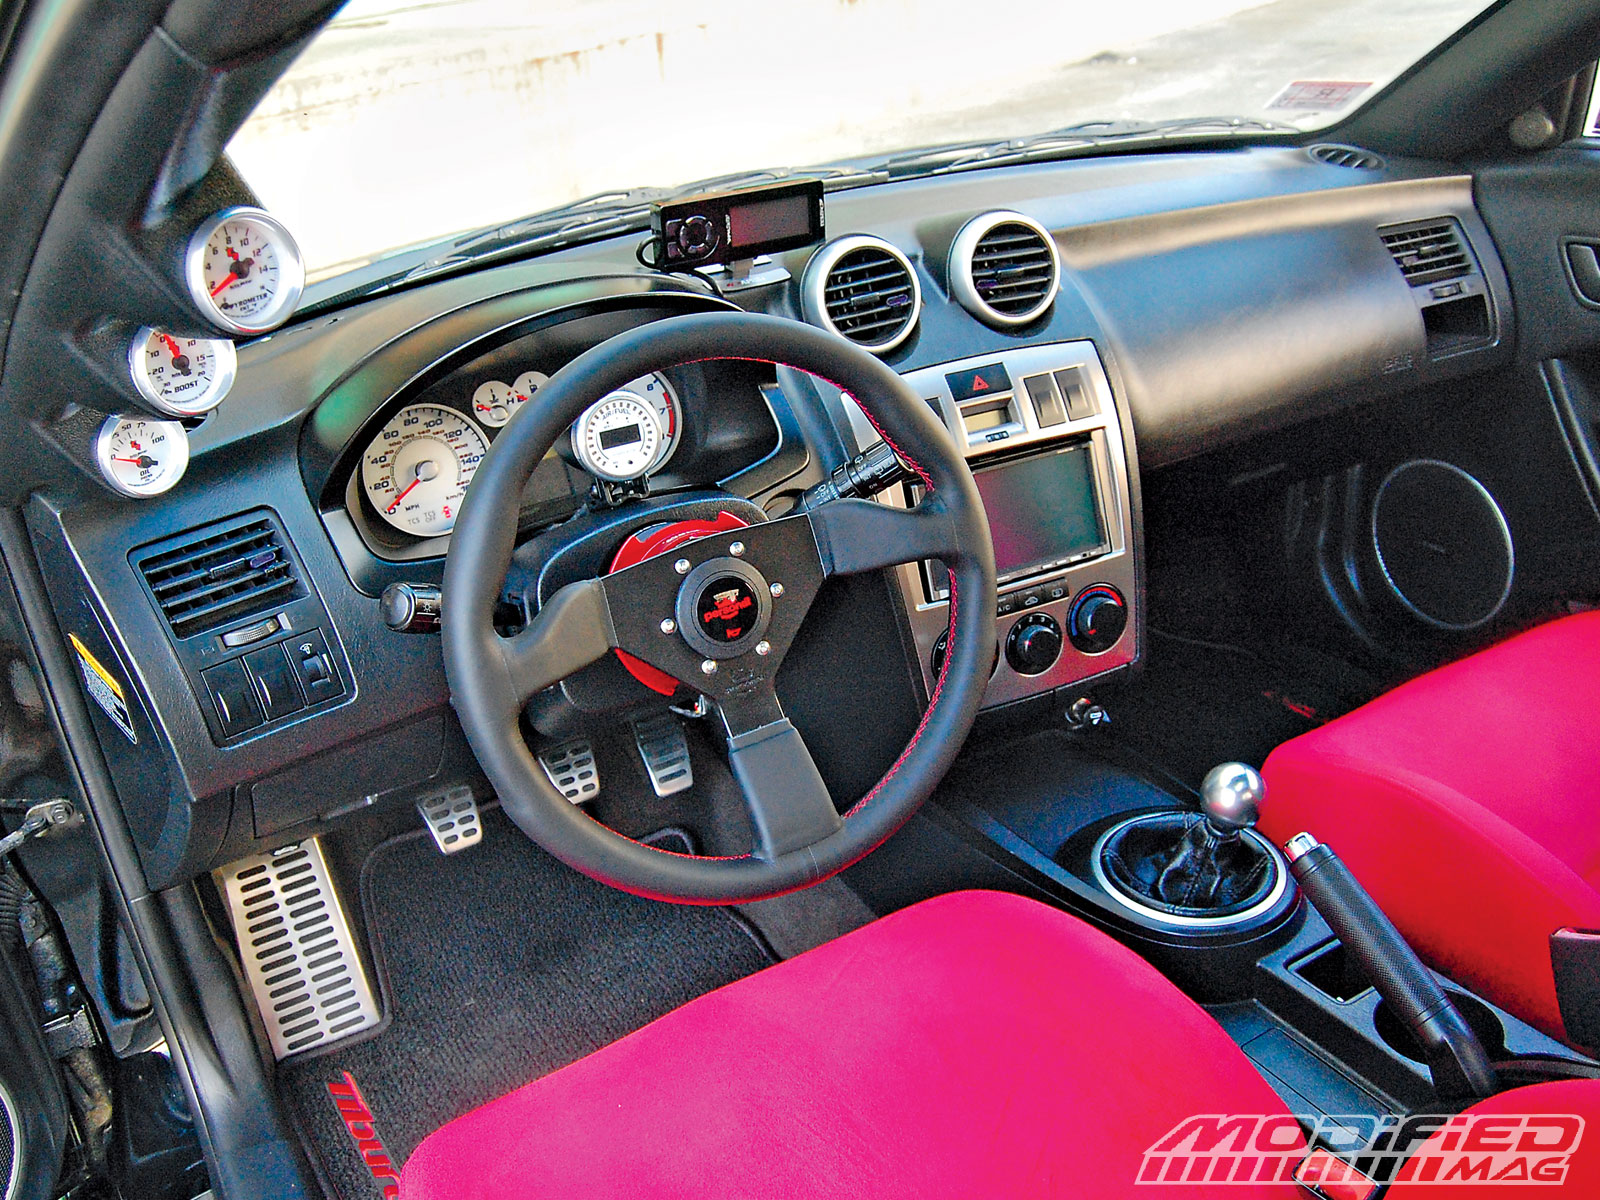 hyundai tiburon review best interior dimensions with hyundai 1999 hyundai tiburon engine diagram free hyundai tiburon hyundai tiburon with hyundai tiburon review